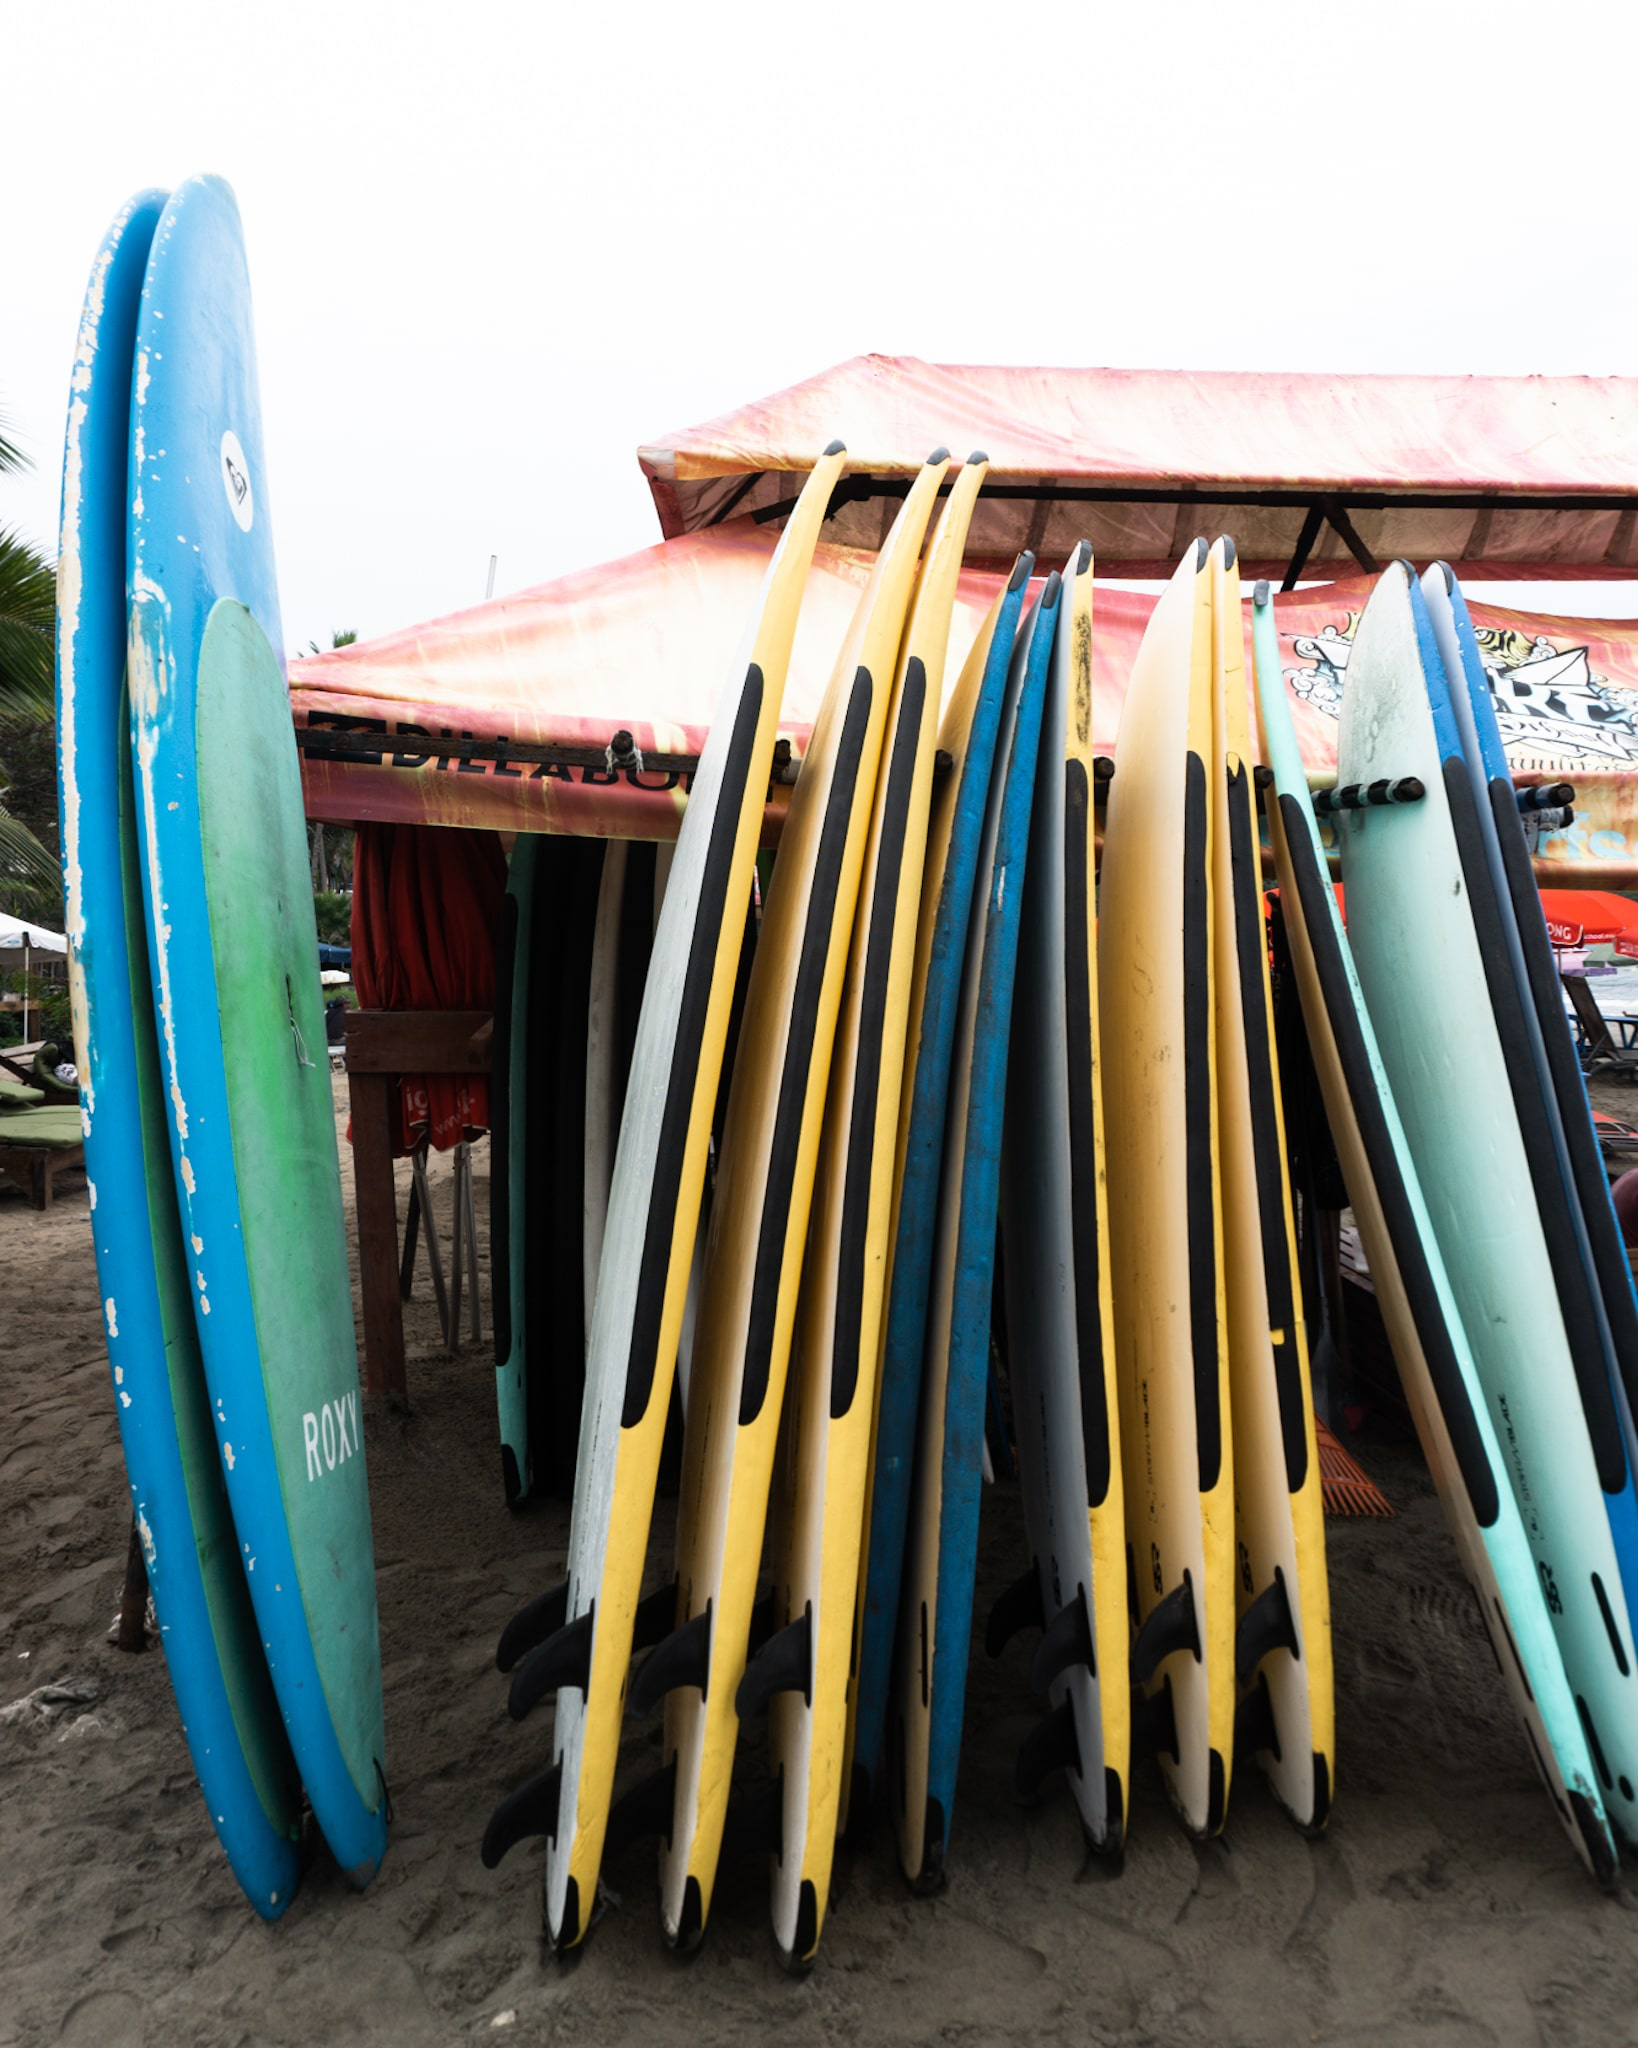 Surfing is one of the best things to do in Sayulita, Mexico